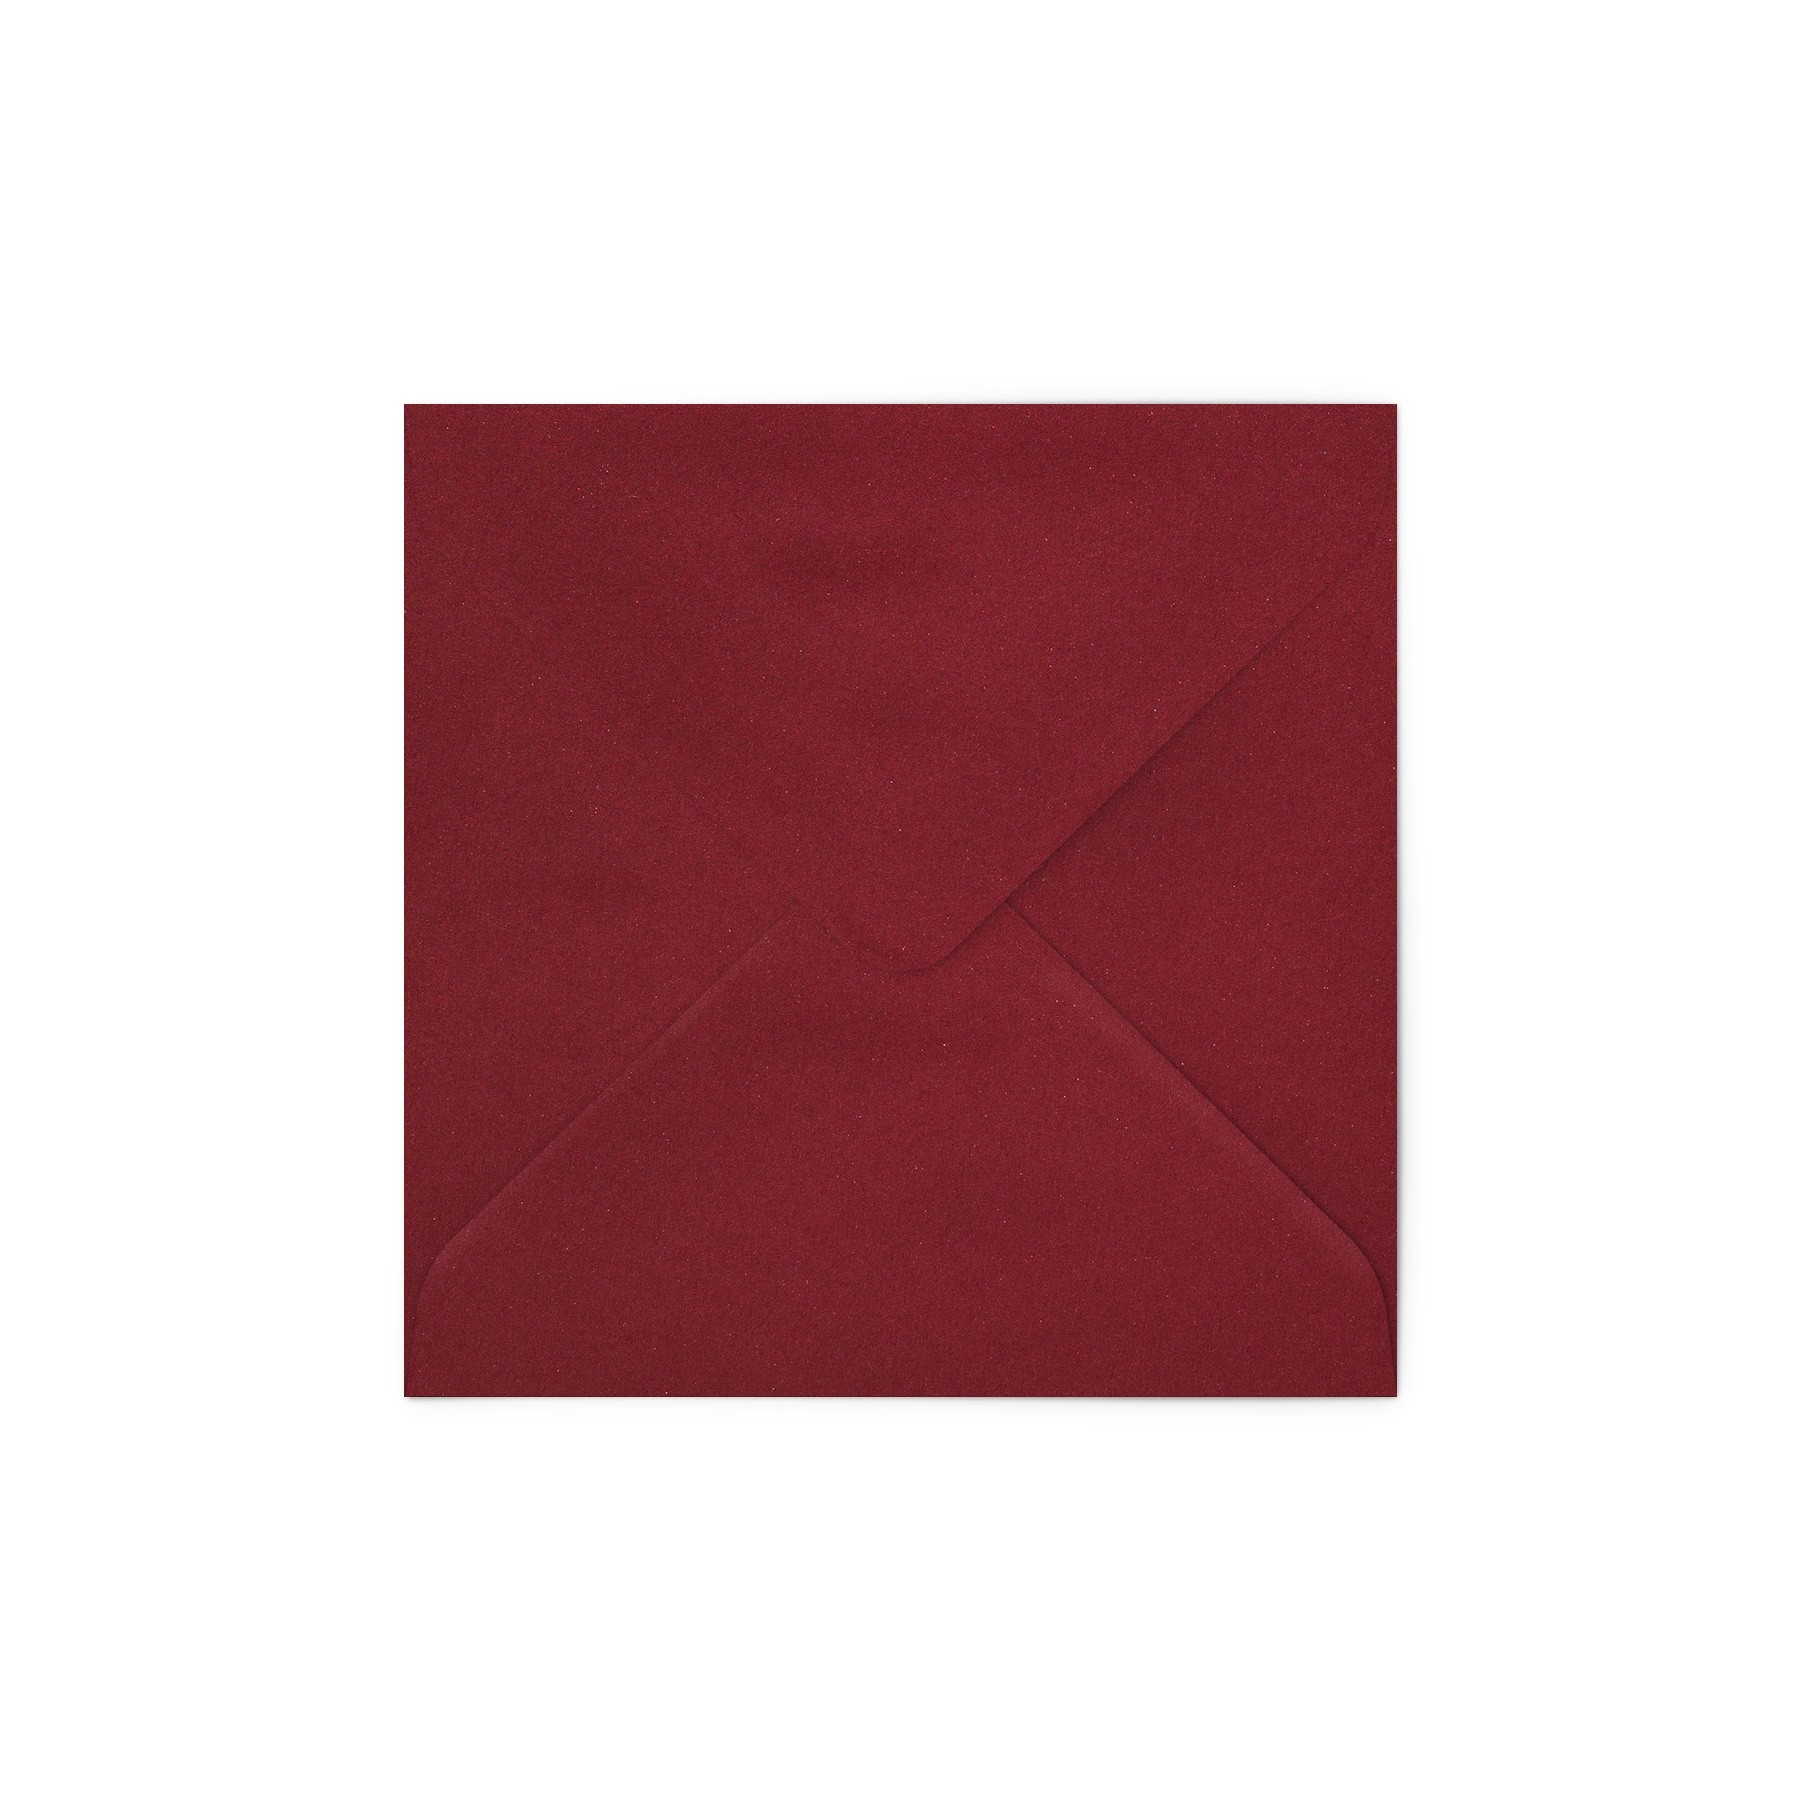 Plic patrat Red Lacquer Sidefat